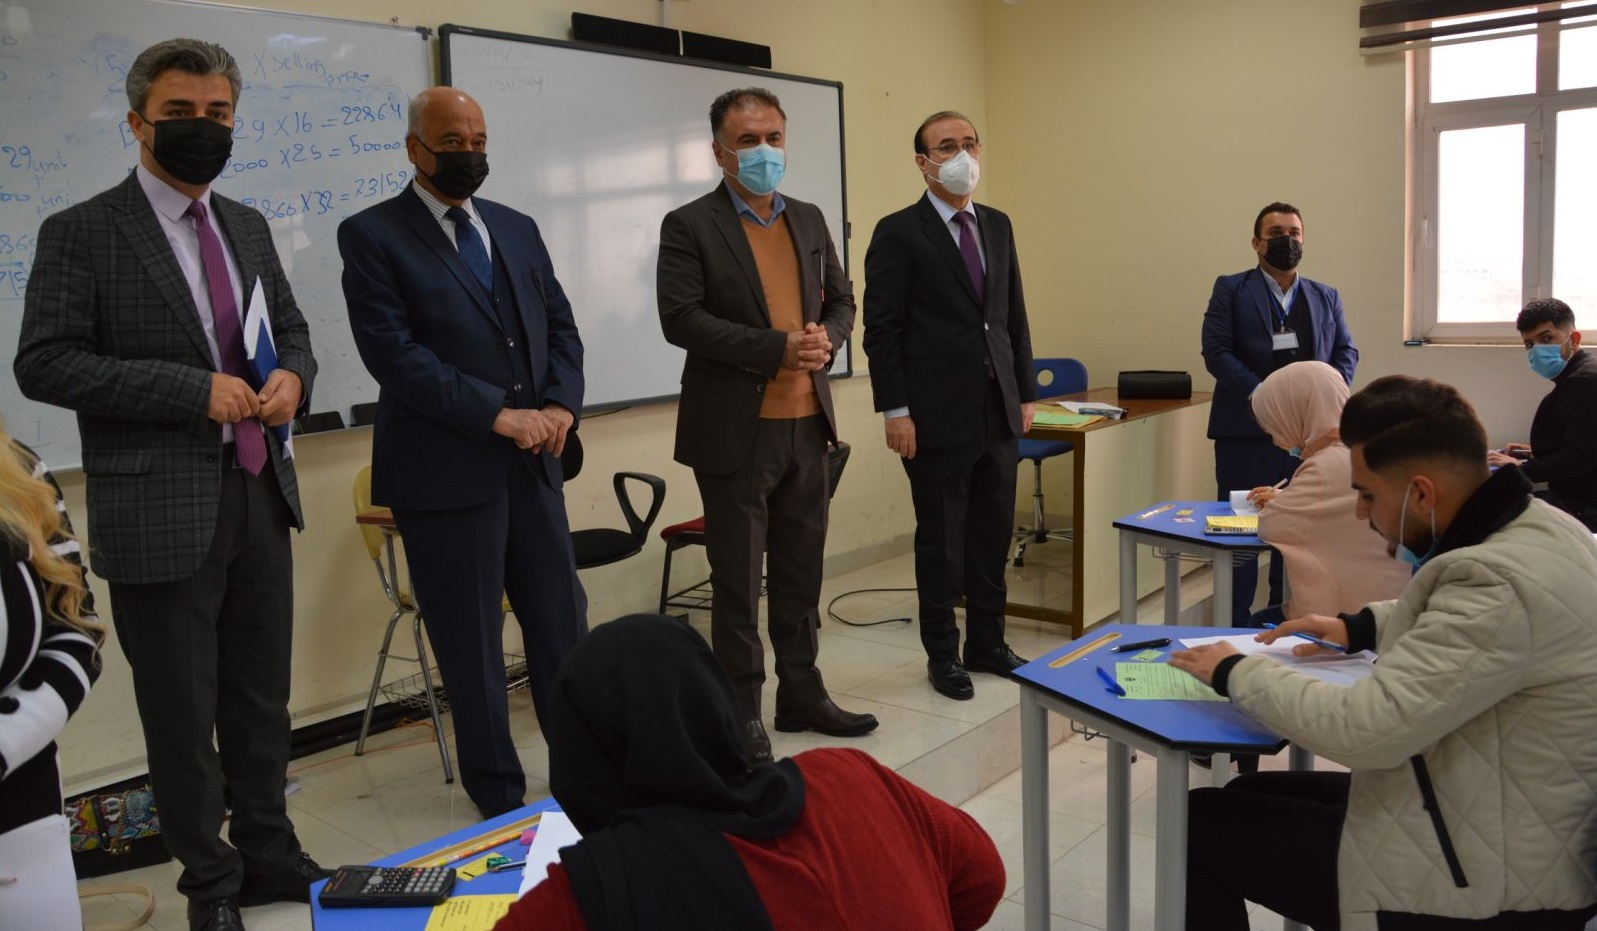 The Rector of the Erbil Polytechnic University Visits the Exam Halls of the Erbil Administration Technical College